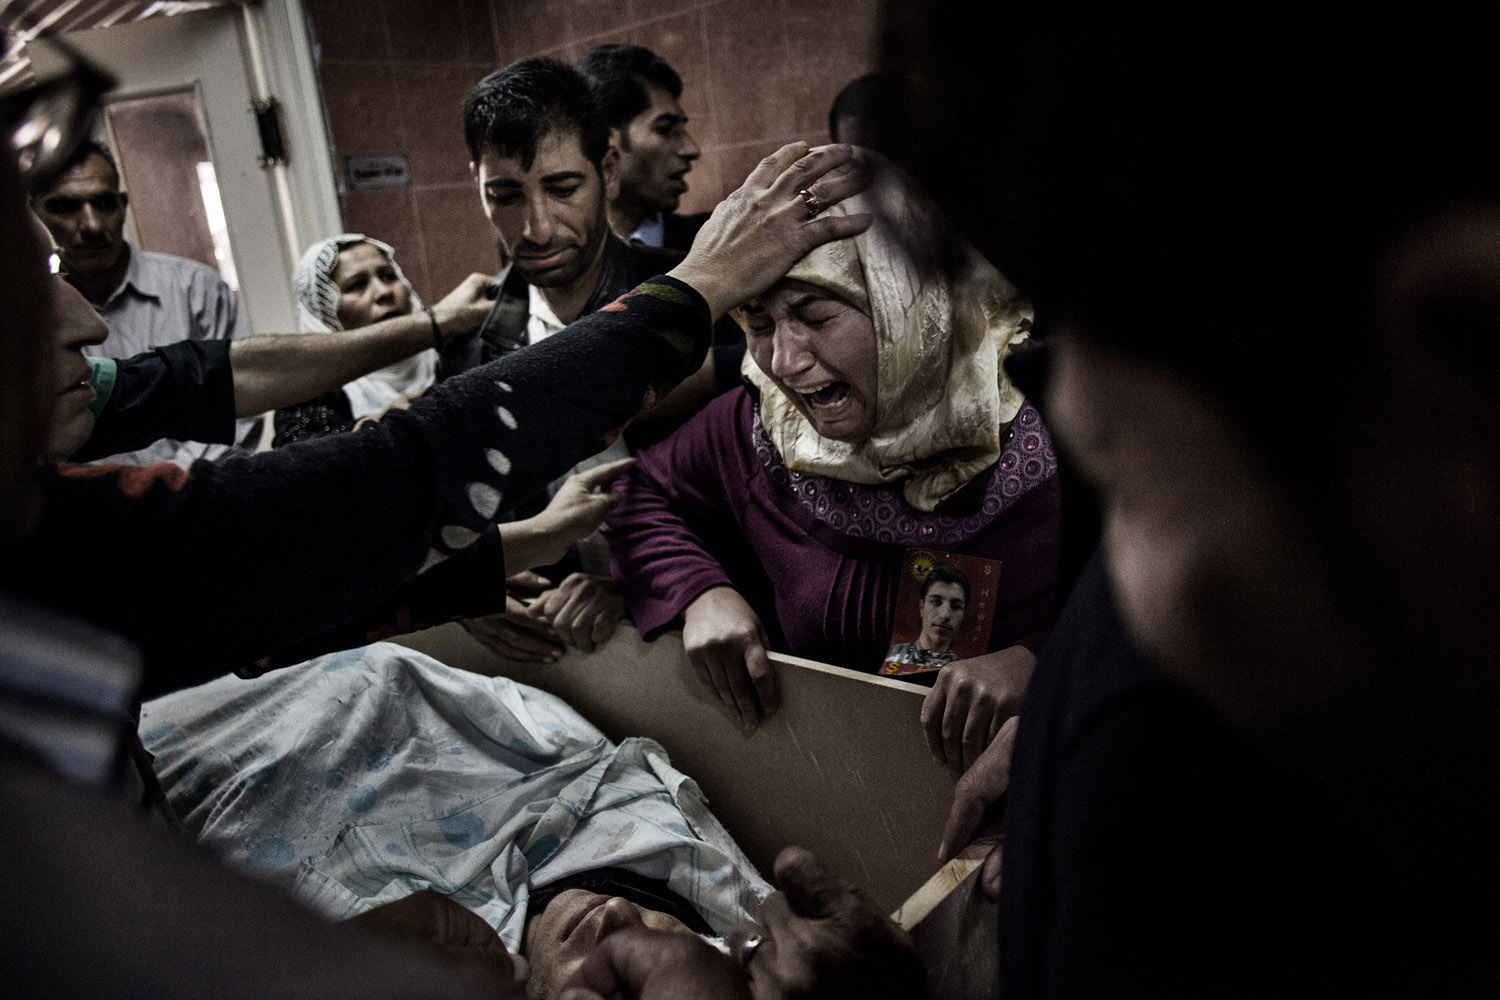 Relatives of a YPG fighter killed in the battles against the Nusra Front, near Ramelan, mourn over his body at the hospital morgue in al-Malikiyah (Derik).